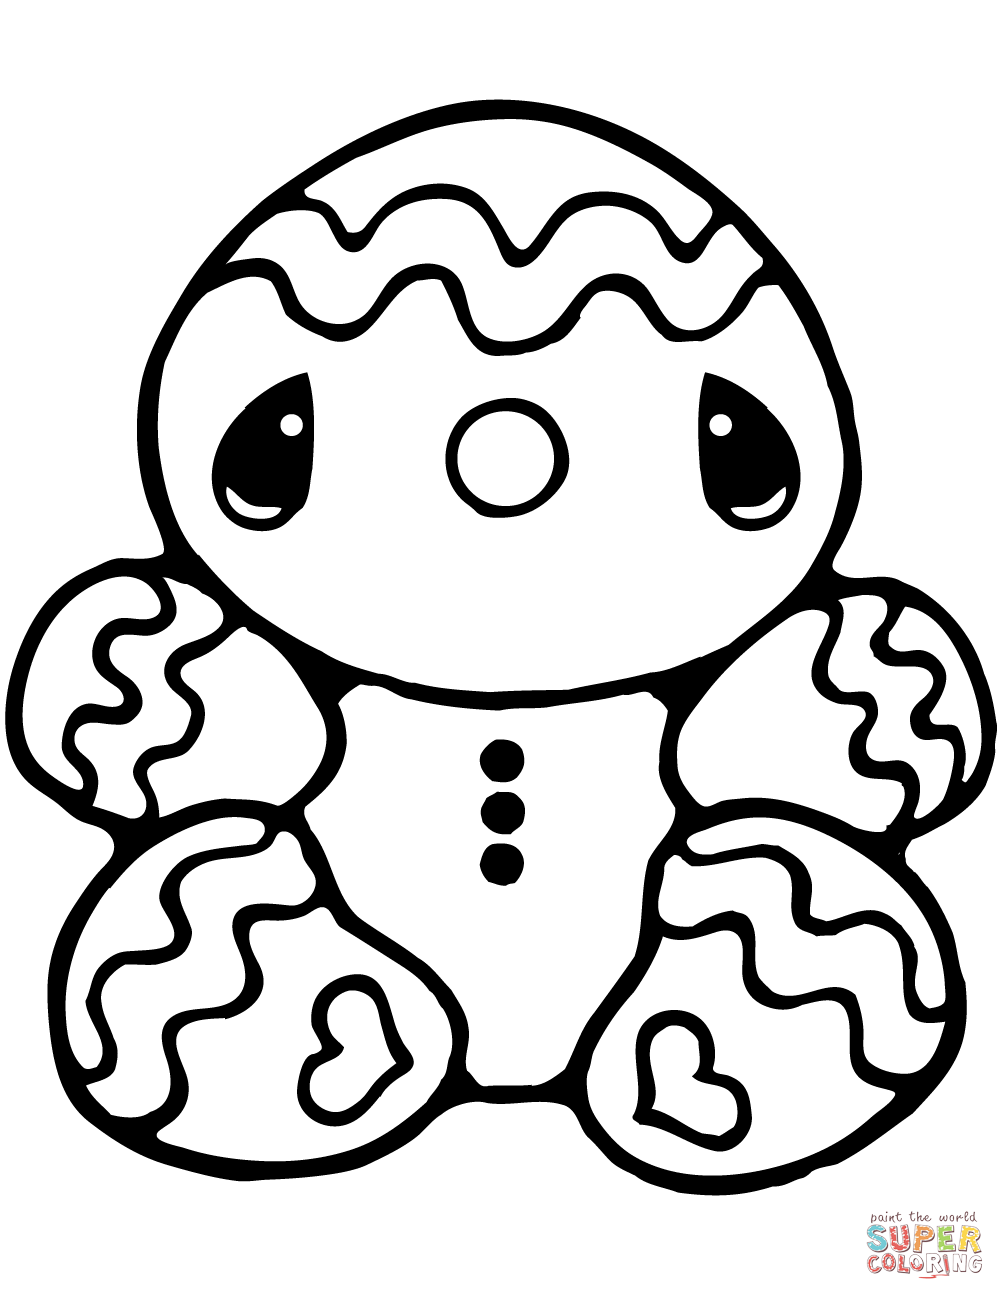 Gingerbread Man Black And White | Free download on ClipArtMag